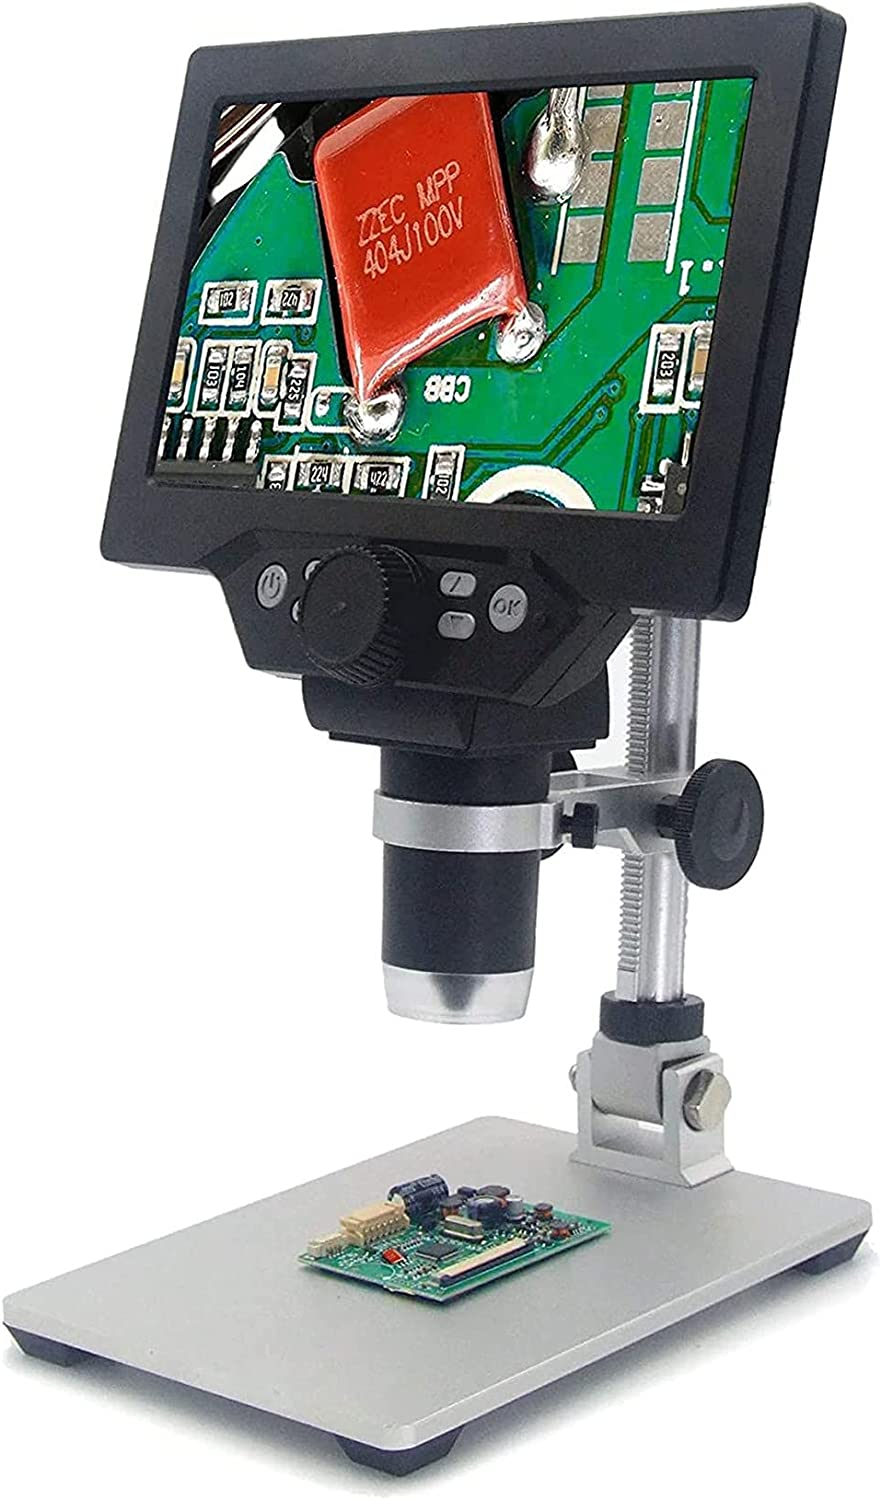 Seattle Mall 7 inch LCD Digital USB Microscope 32G 10-1200X with Card Max 80% OFF Magn TF